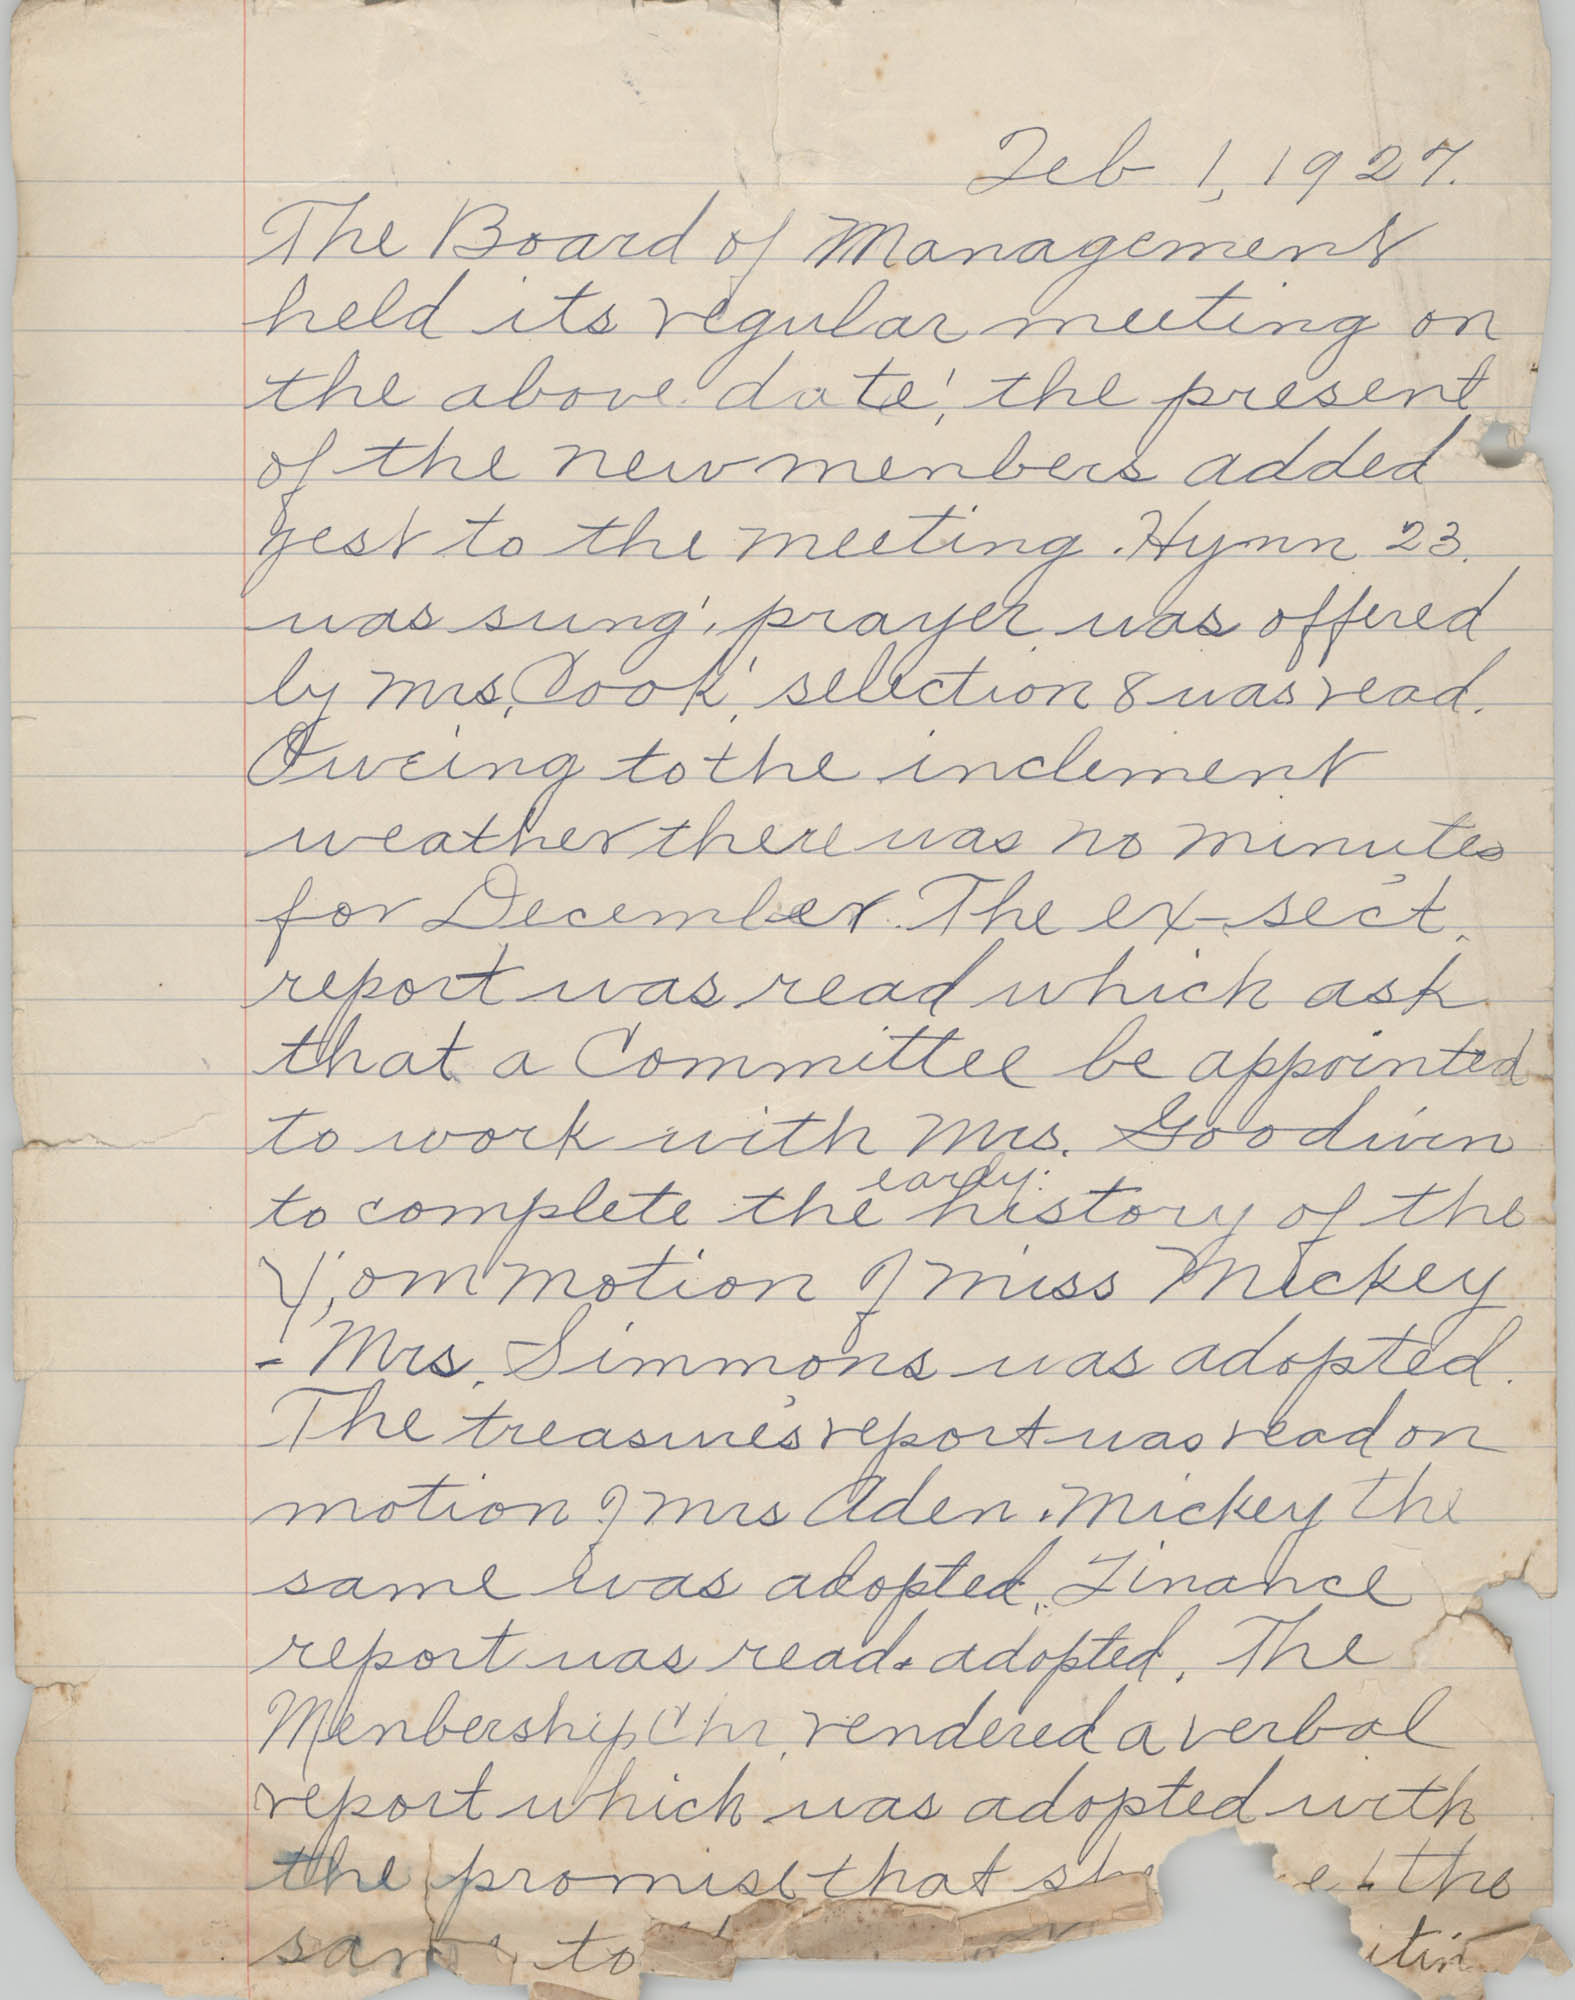 Minutes to the Board of Management, Coming Street Y.W.C.A., February 1, 1927